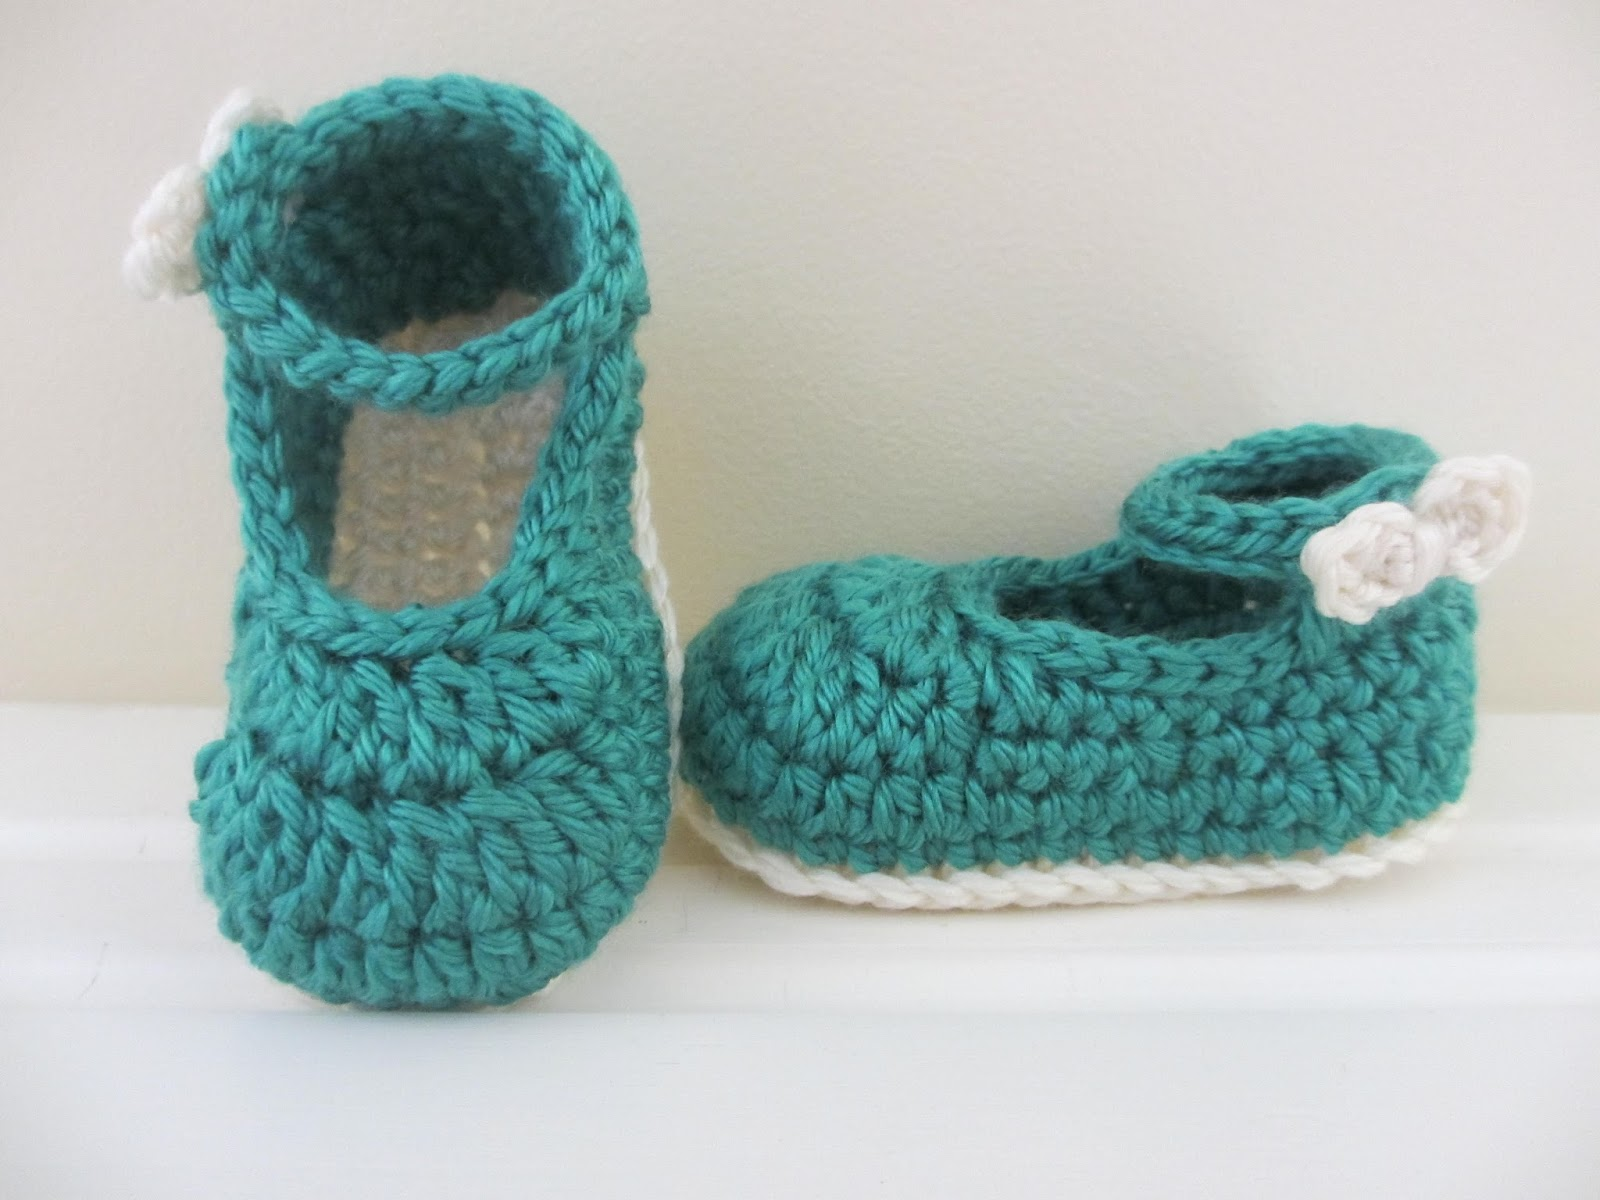 Knitted Nike Shoes